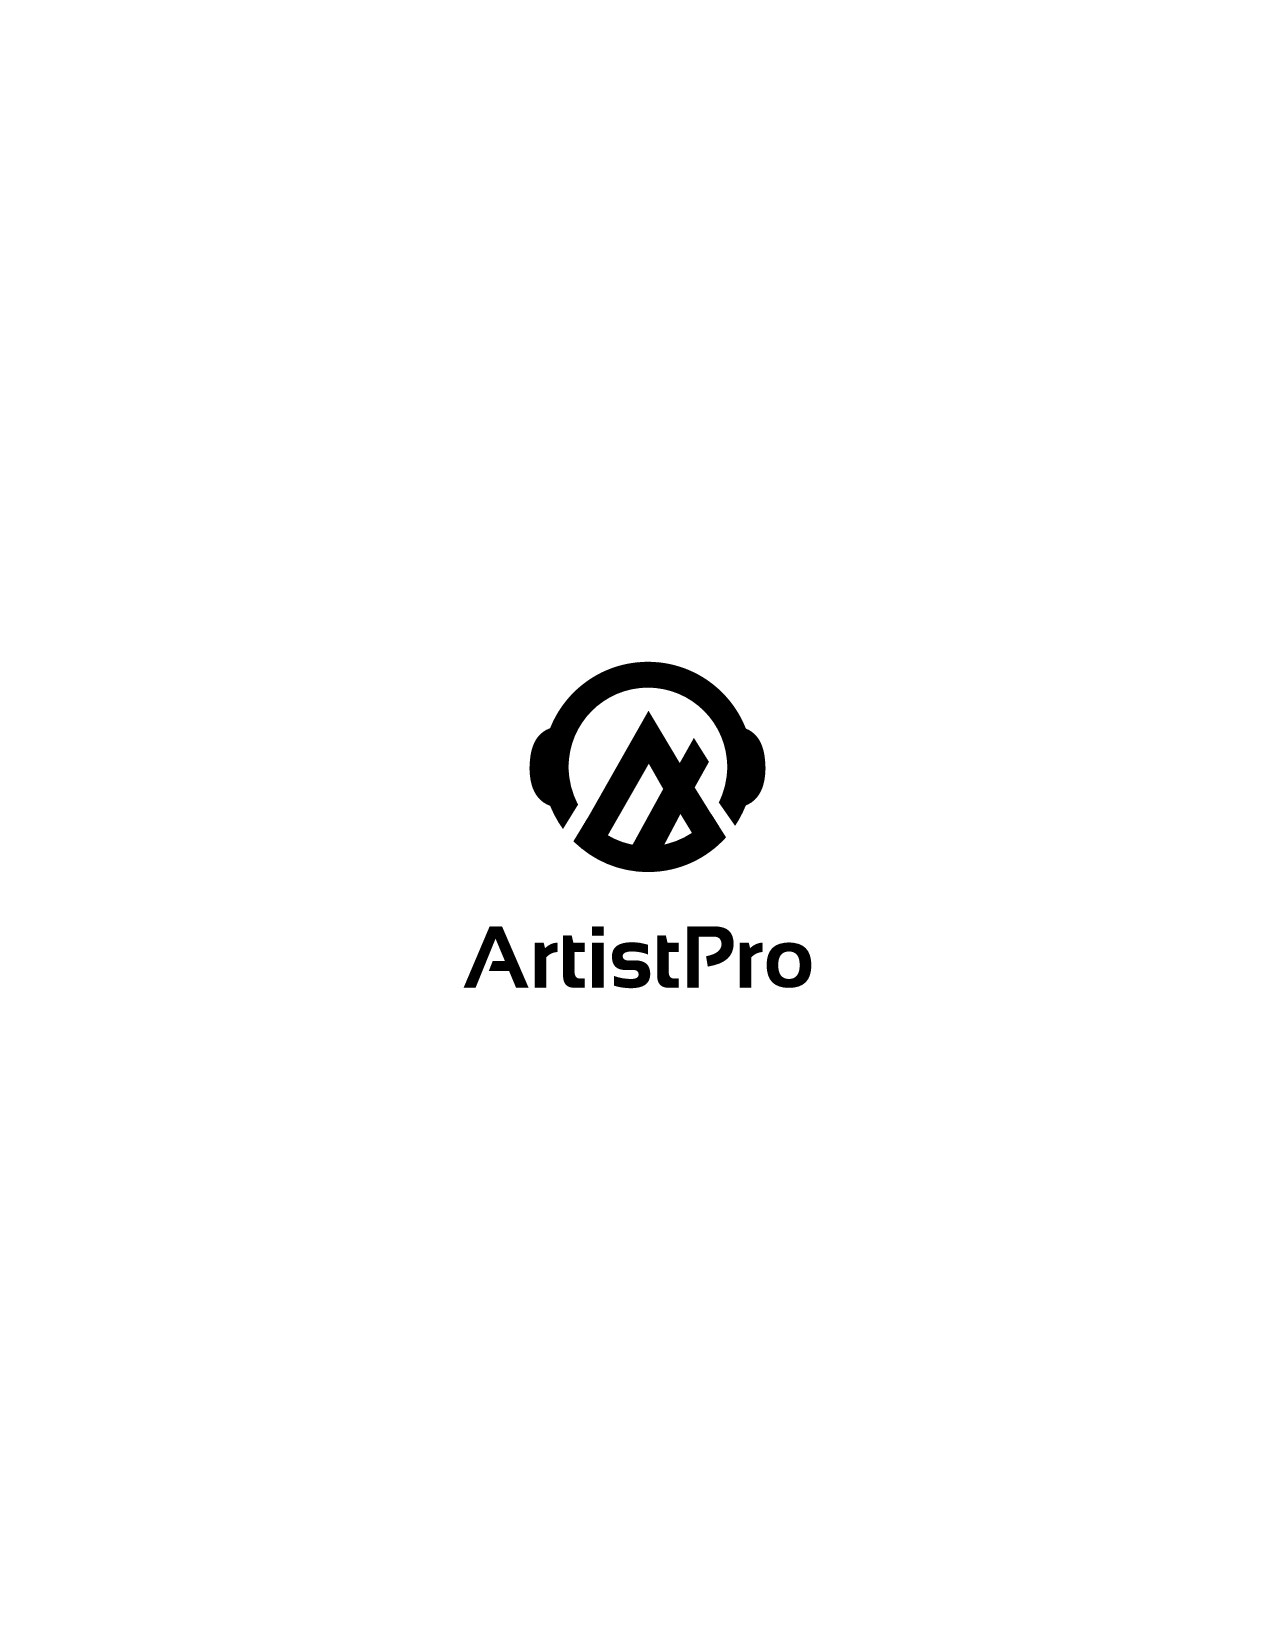 Music business brand needs visual identity (strong font & logo!)